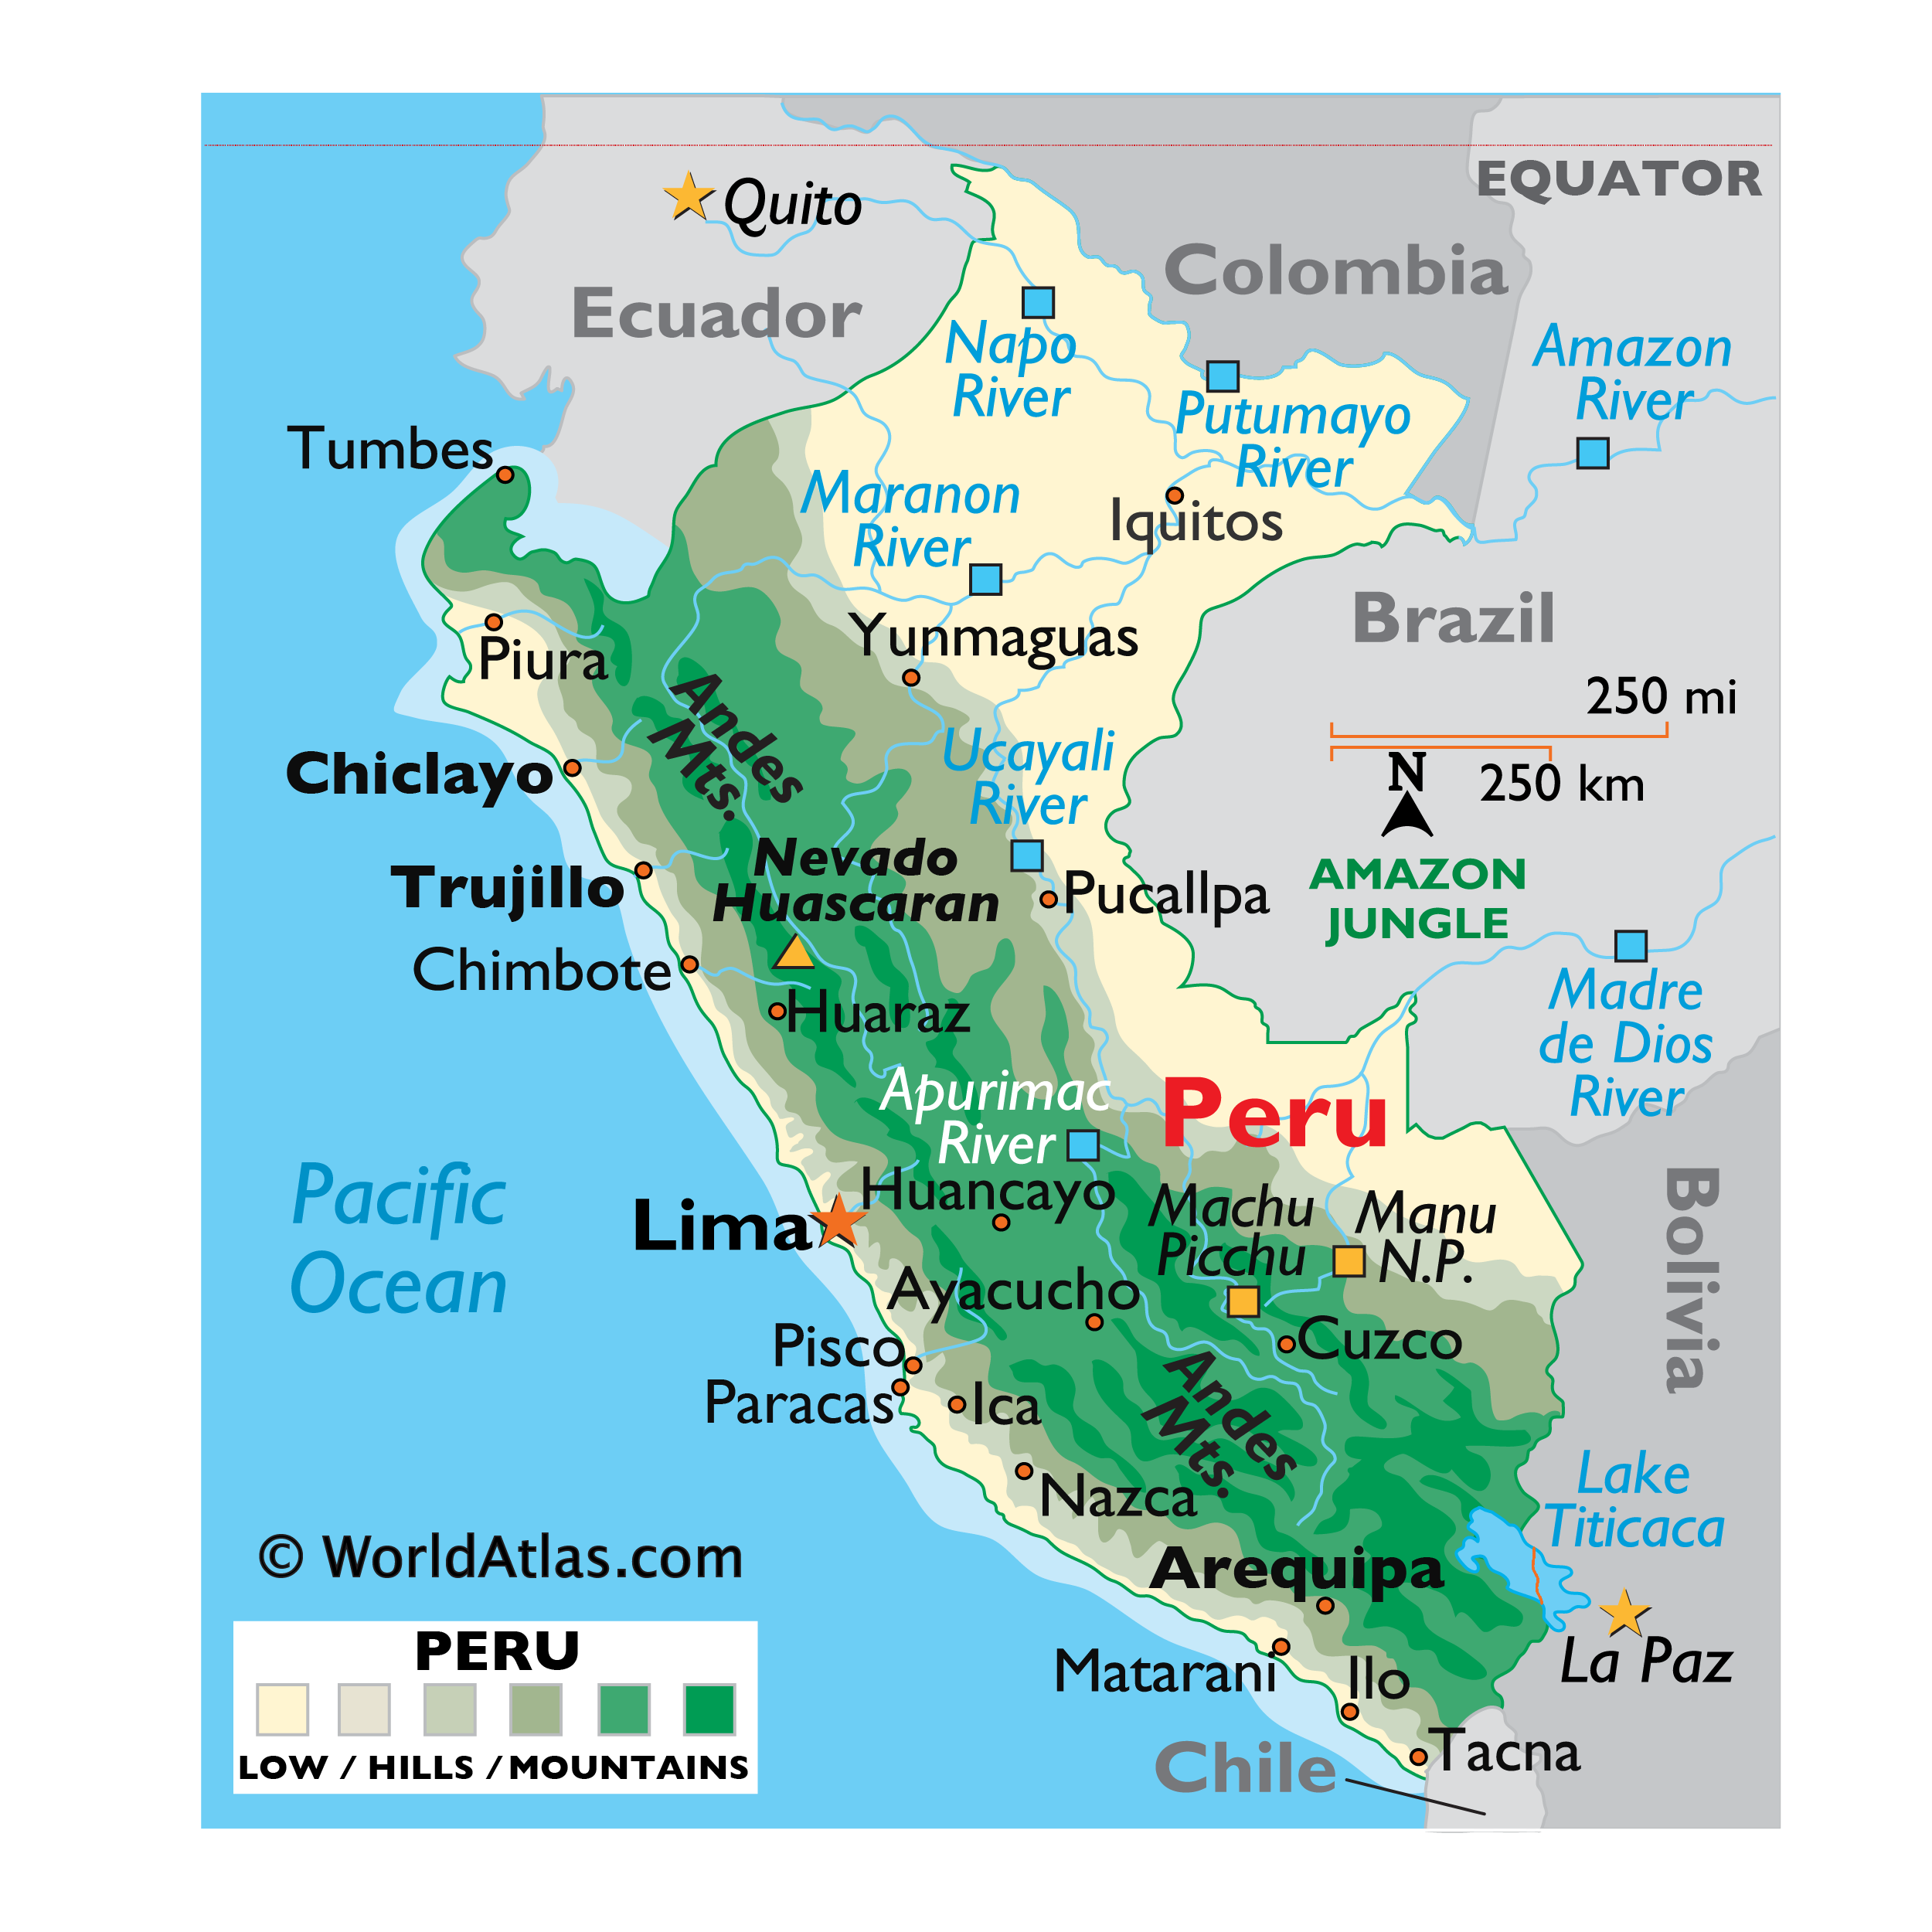 Physical Map of Peru showing relief, mountains, major rivers, Lake Titicaca, important cities, neighbouring countries, etc.